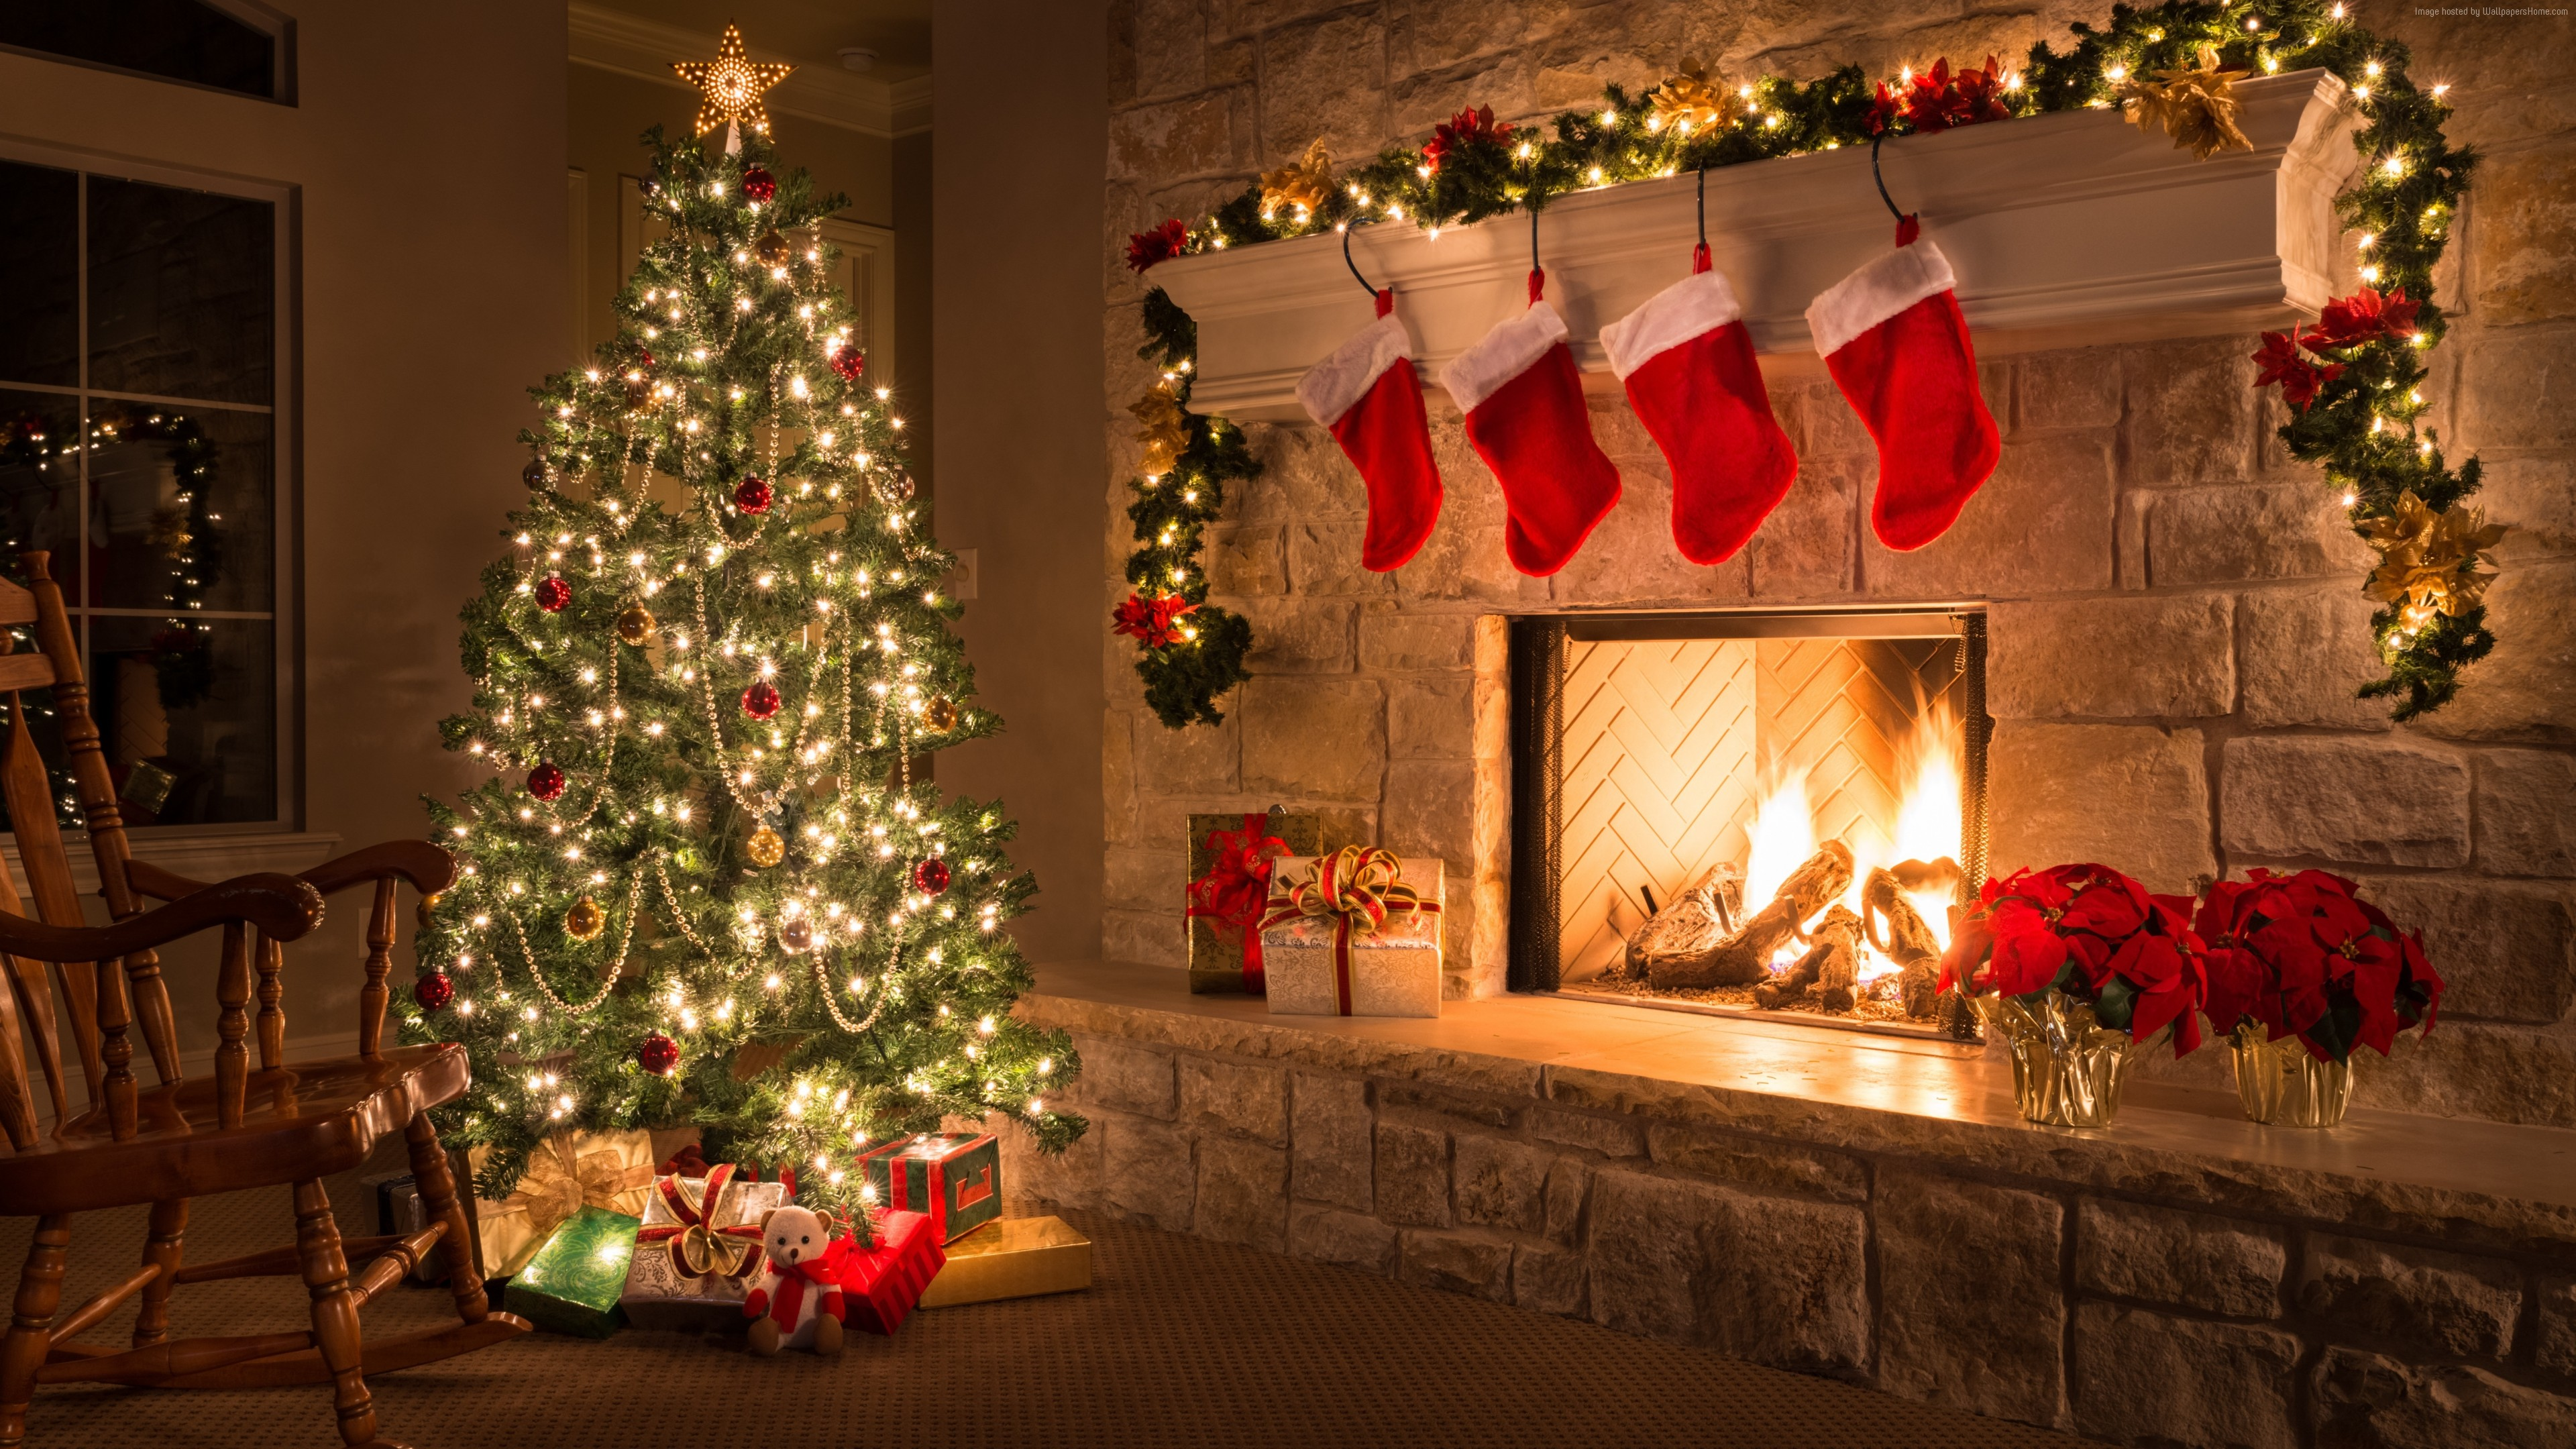 Wallpaper Christmas, New Year, Gifts, Fir Tree, Fireplace, Decorations, 5K, Holidays